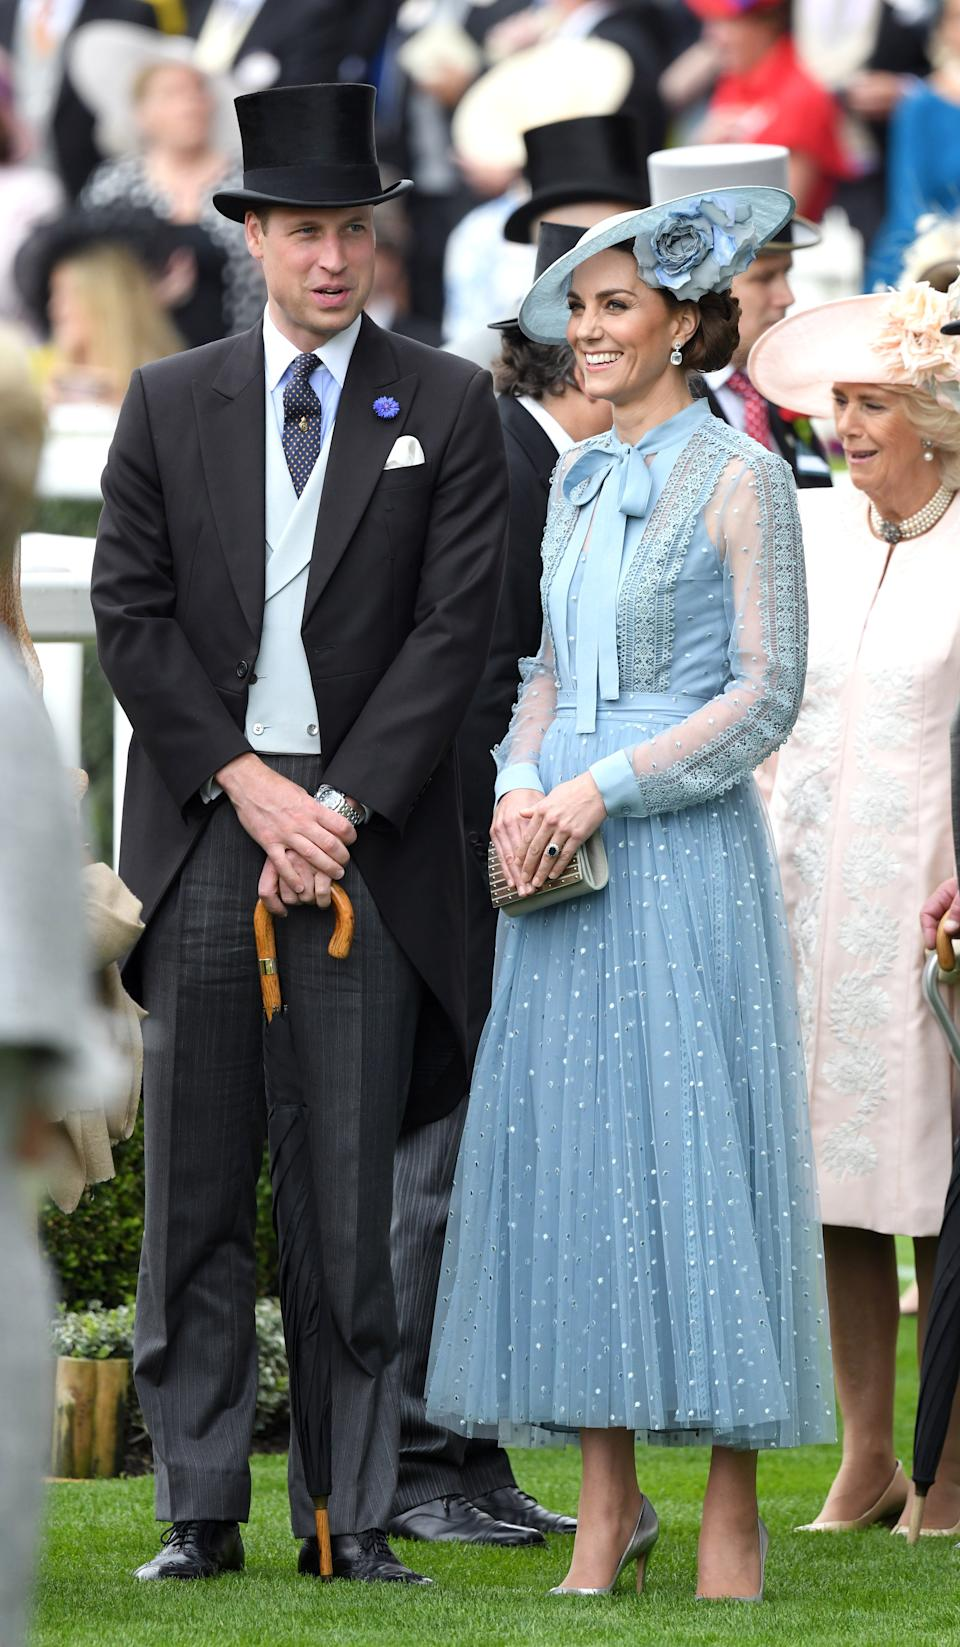 The couple co-ordinated beautifully for the occasion with Kate in a duck egg blue lace Elie Saab skirt and blouse combo and William in a duck egg blue waistcoat. <em>[Photo: Getty]</em>